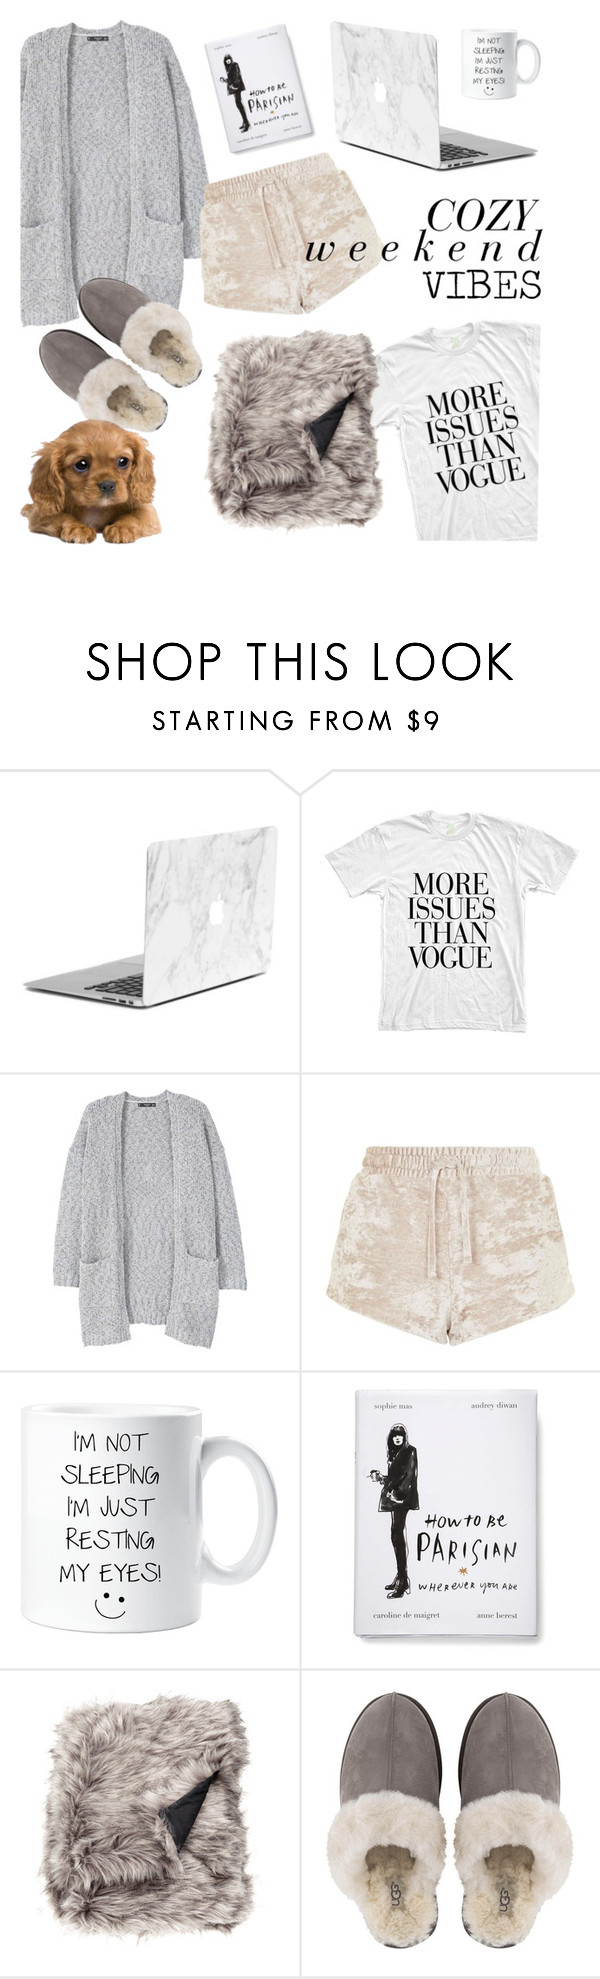 """""""Cozy Weekend Vibes"""" by emmy ❤ liked on Polyvore featuring MANGO, Topshop and UGG"""